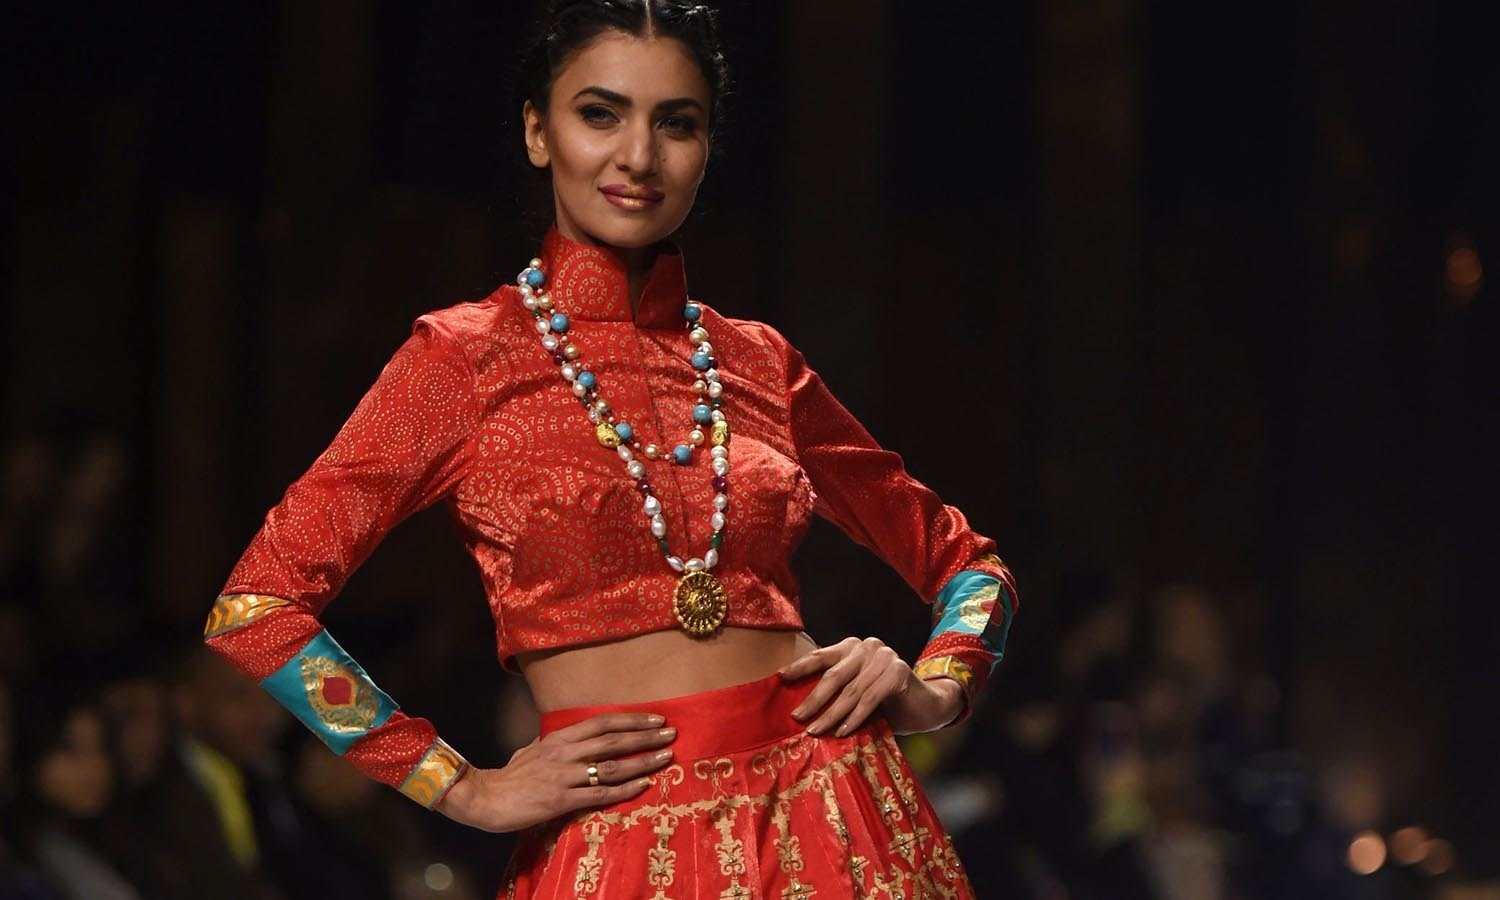 A model presents a creation by designer Wardha Saleem on the second day of the Fashion Pakistan Week in Karachi. — AFP